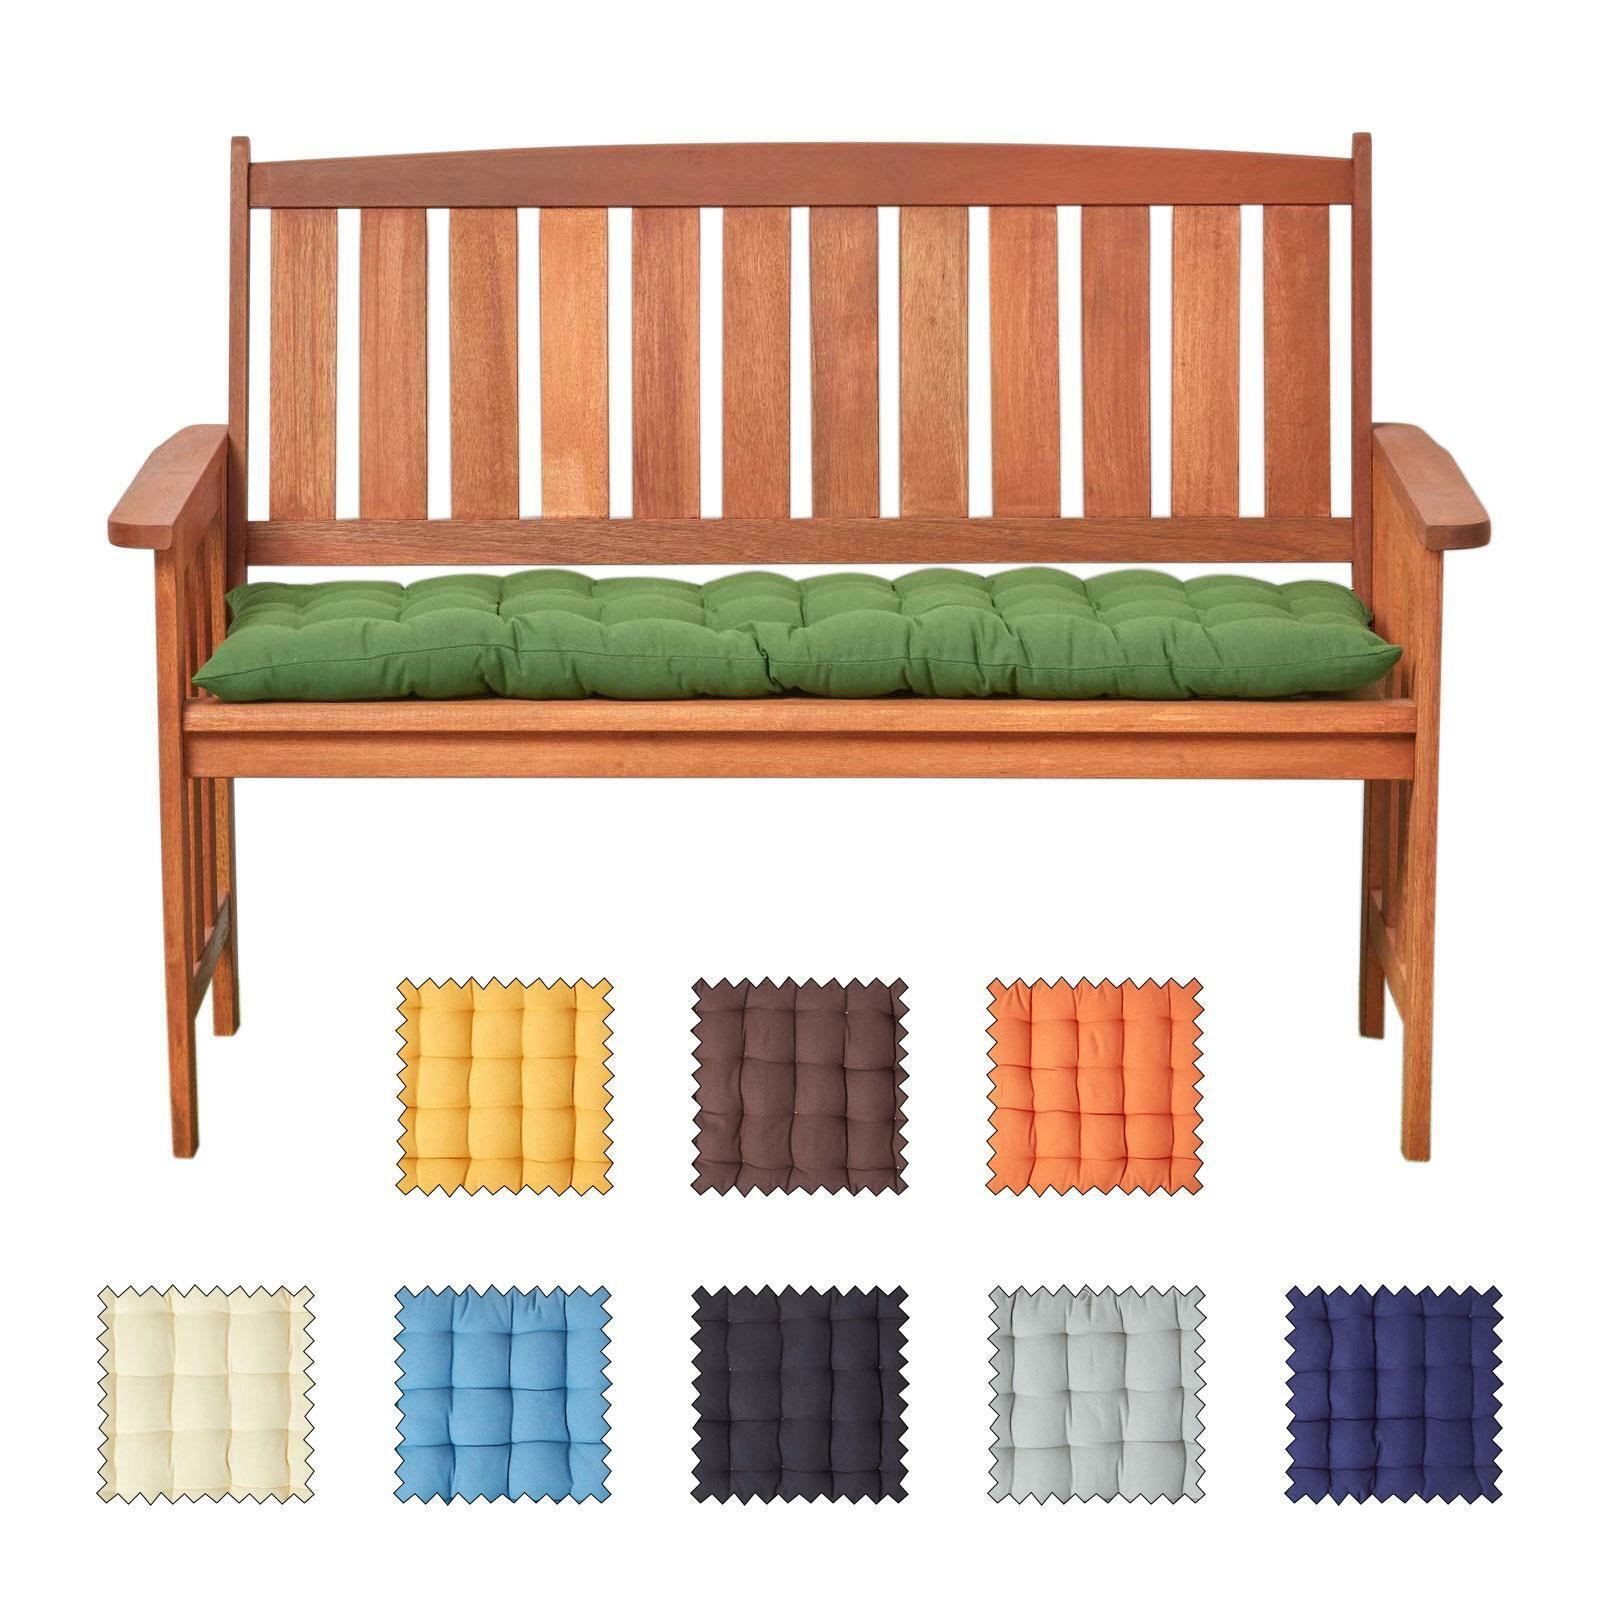 Picture of: 2 3 Seater Bench Cushion Seat Pad For Kitchen Dining Bench Indoor Outdoor Ebay